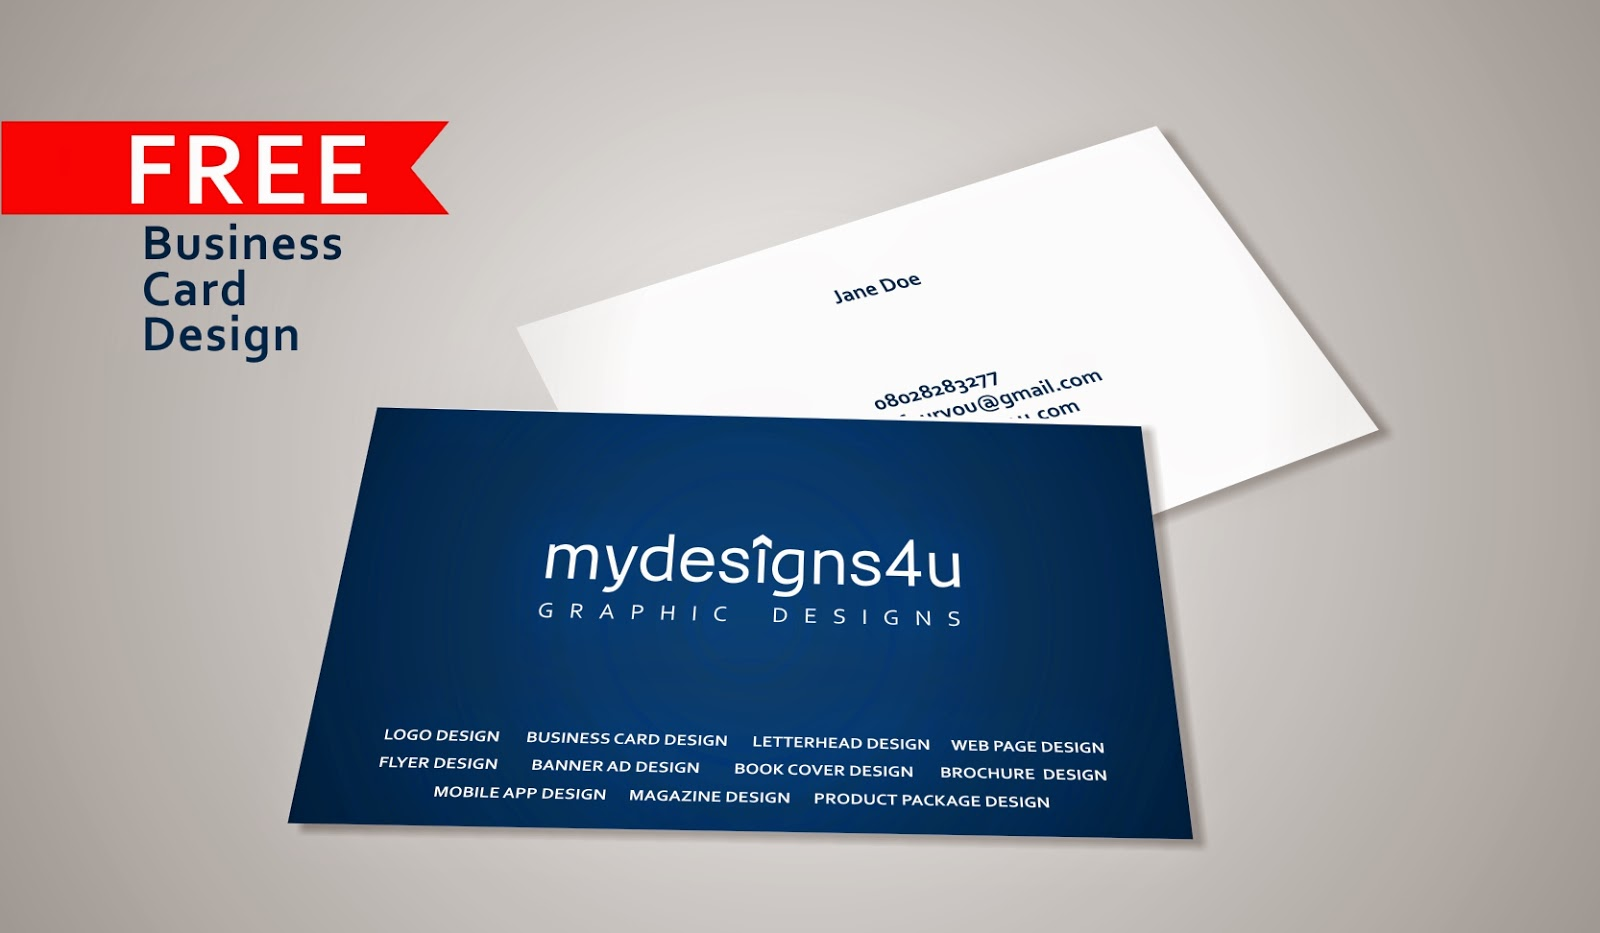 Free business card design a graphic design blog we all like free stuffid be designing business cards for anyone starting a business or whoever needs it send me an email at mydesignsfouryougmail or reheart Gallery